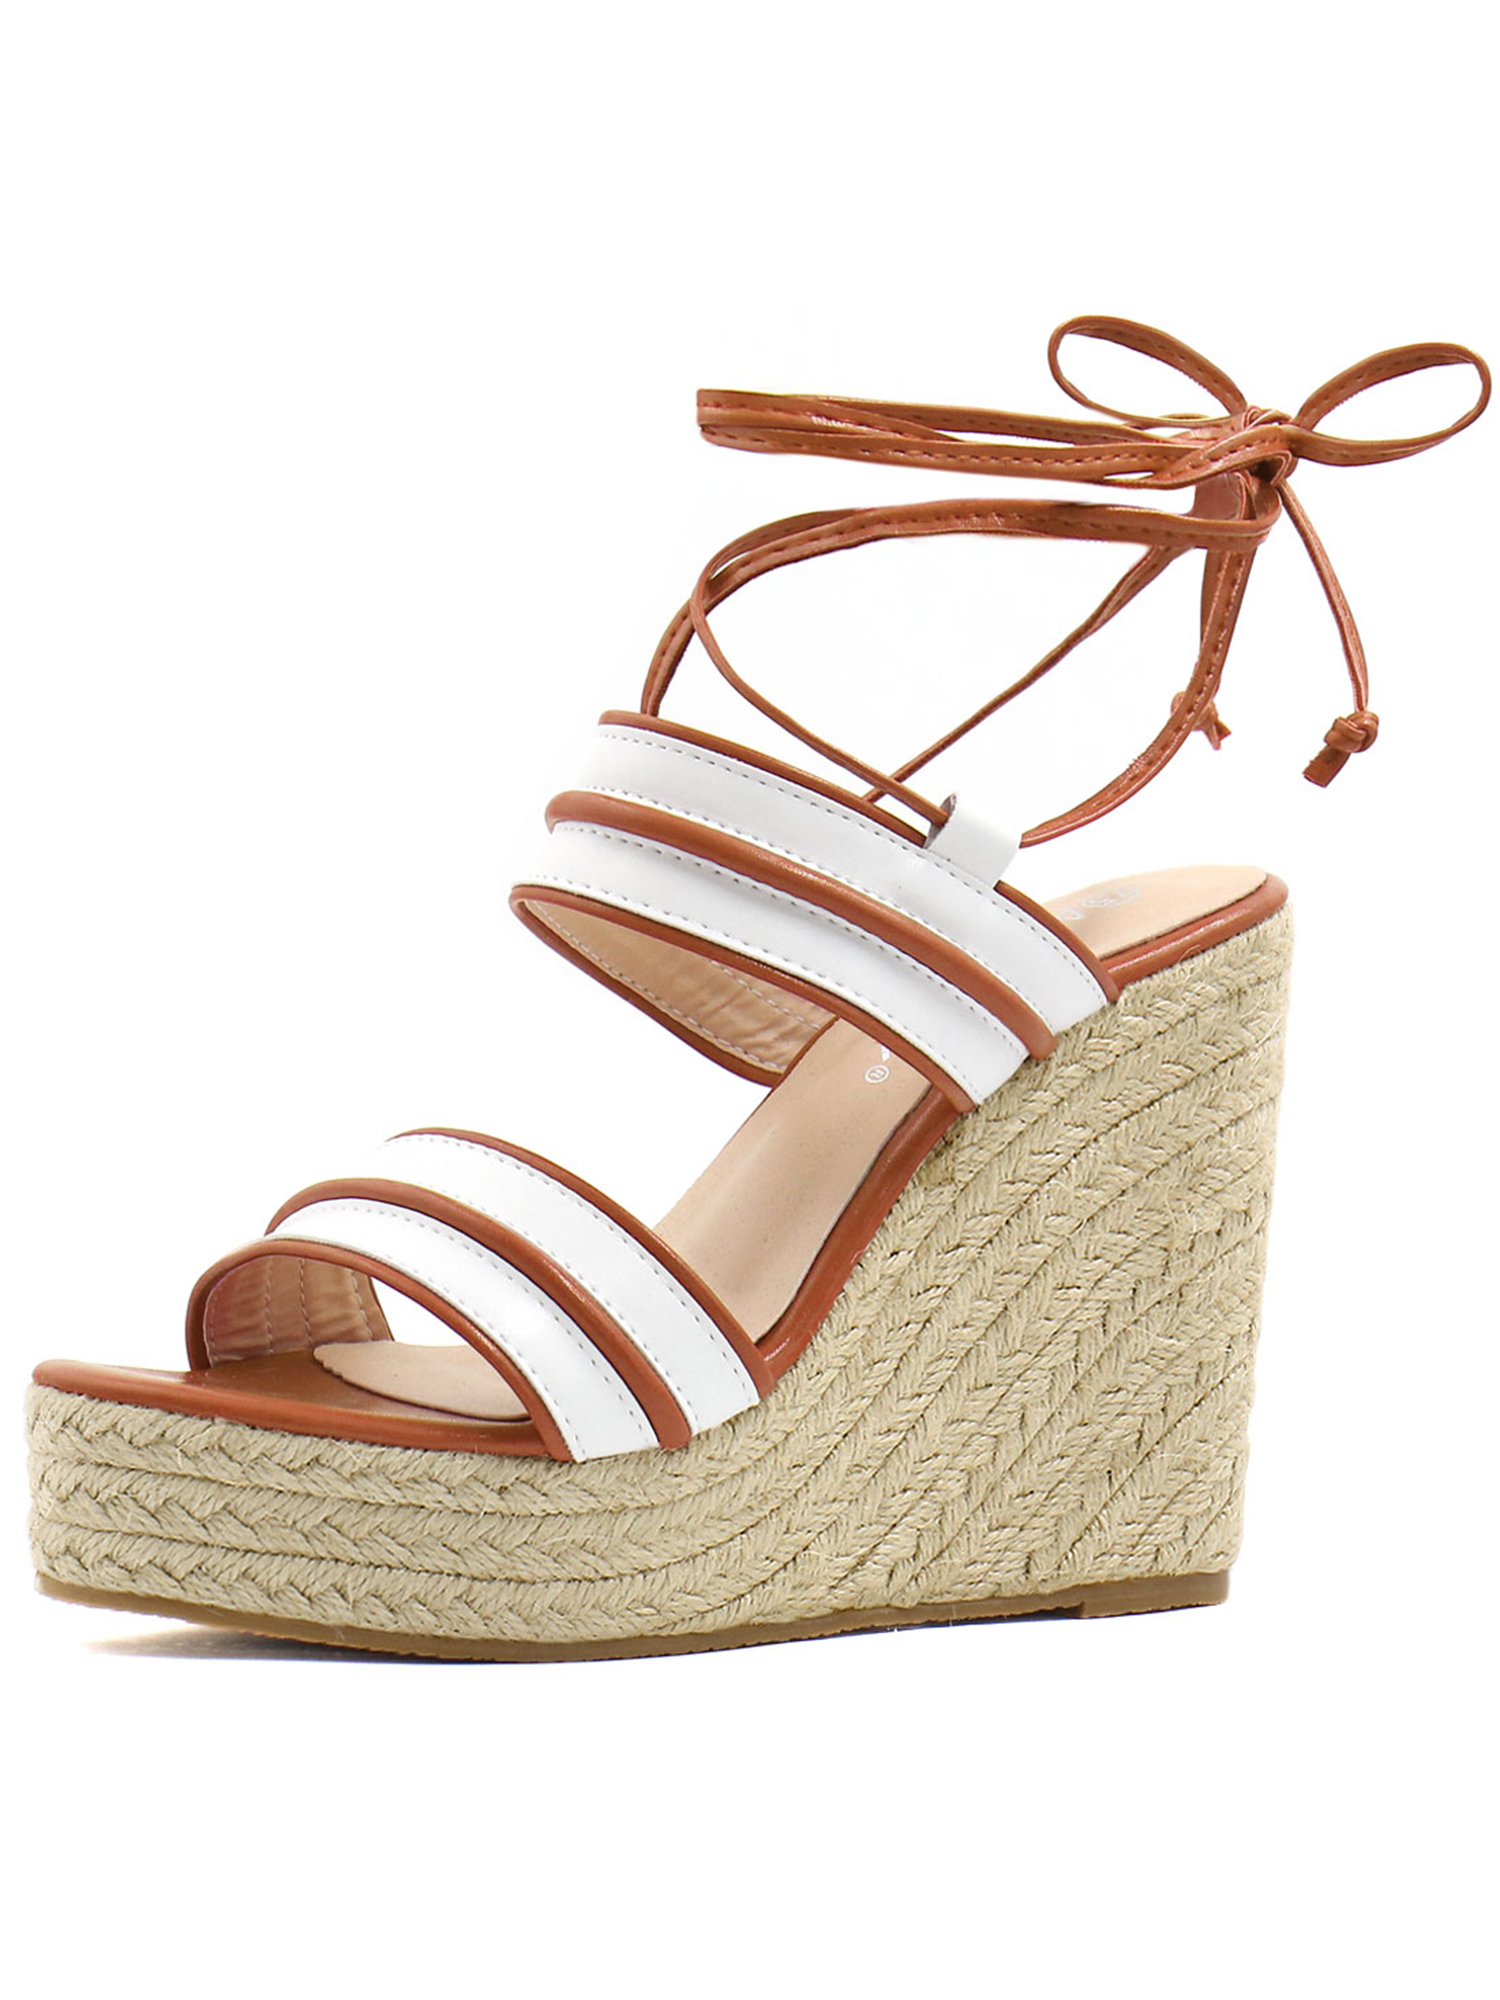 b7c9f9f0016 Unique Bargains Women's Striped Ankle Tie Espadrille Wedge Sandals